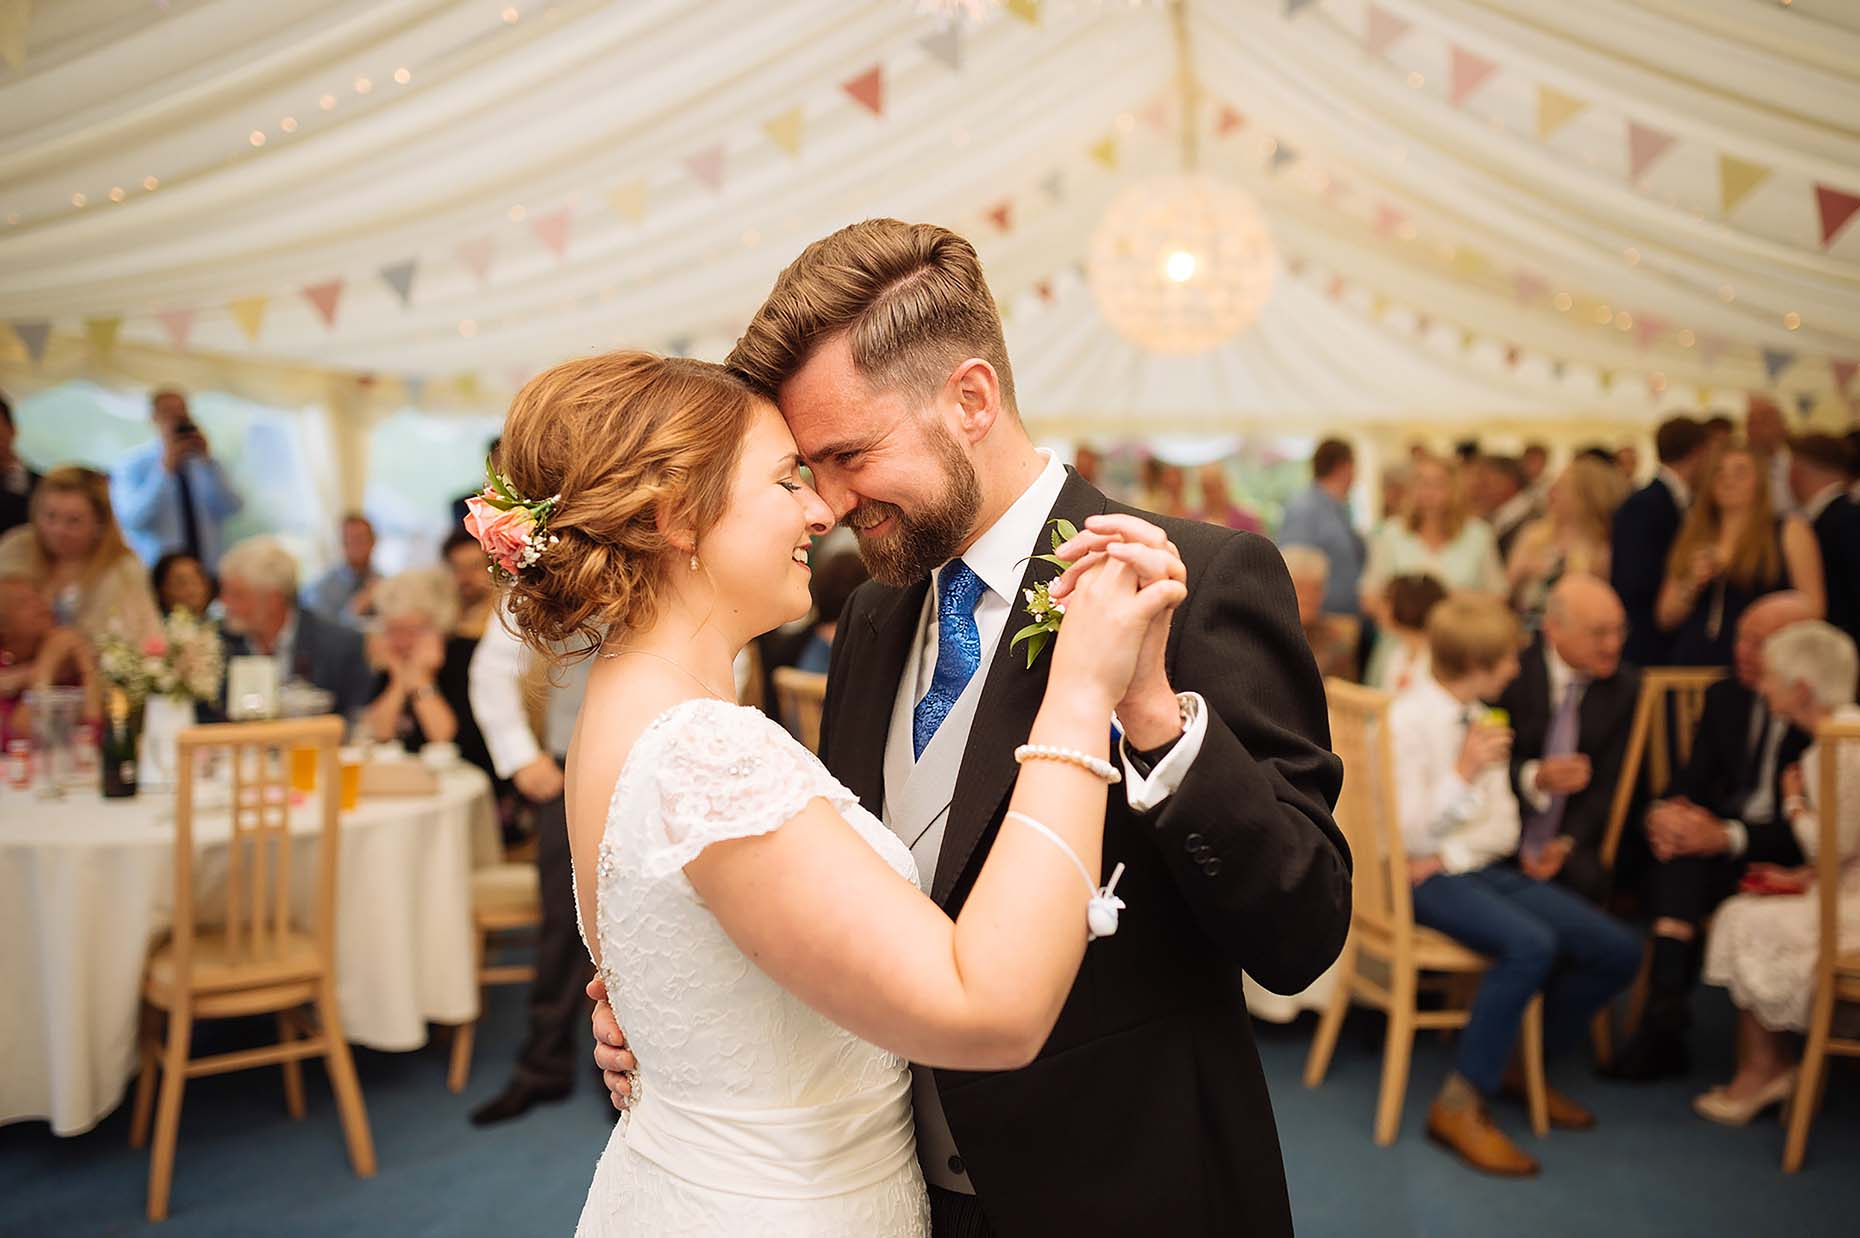 first-dance-wedding-dorset-marquee-tender-love-holding-hands-23